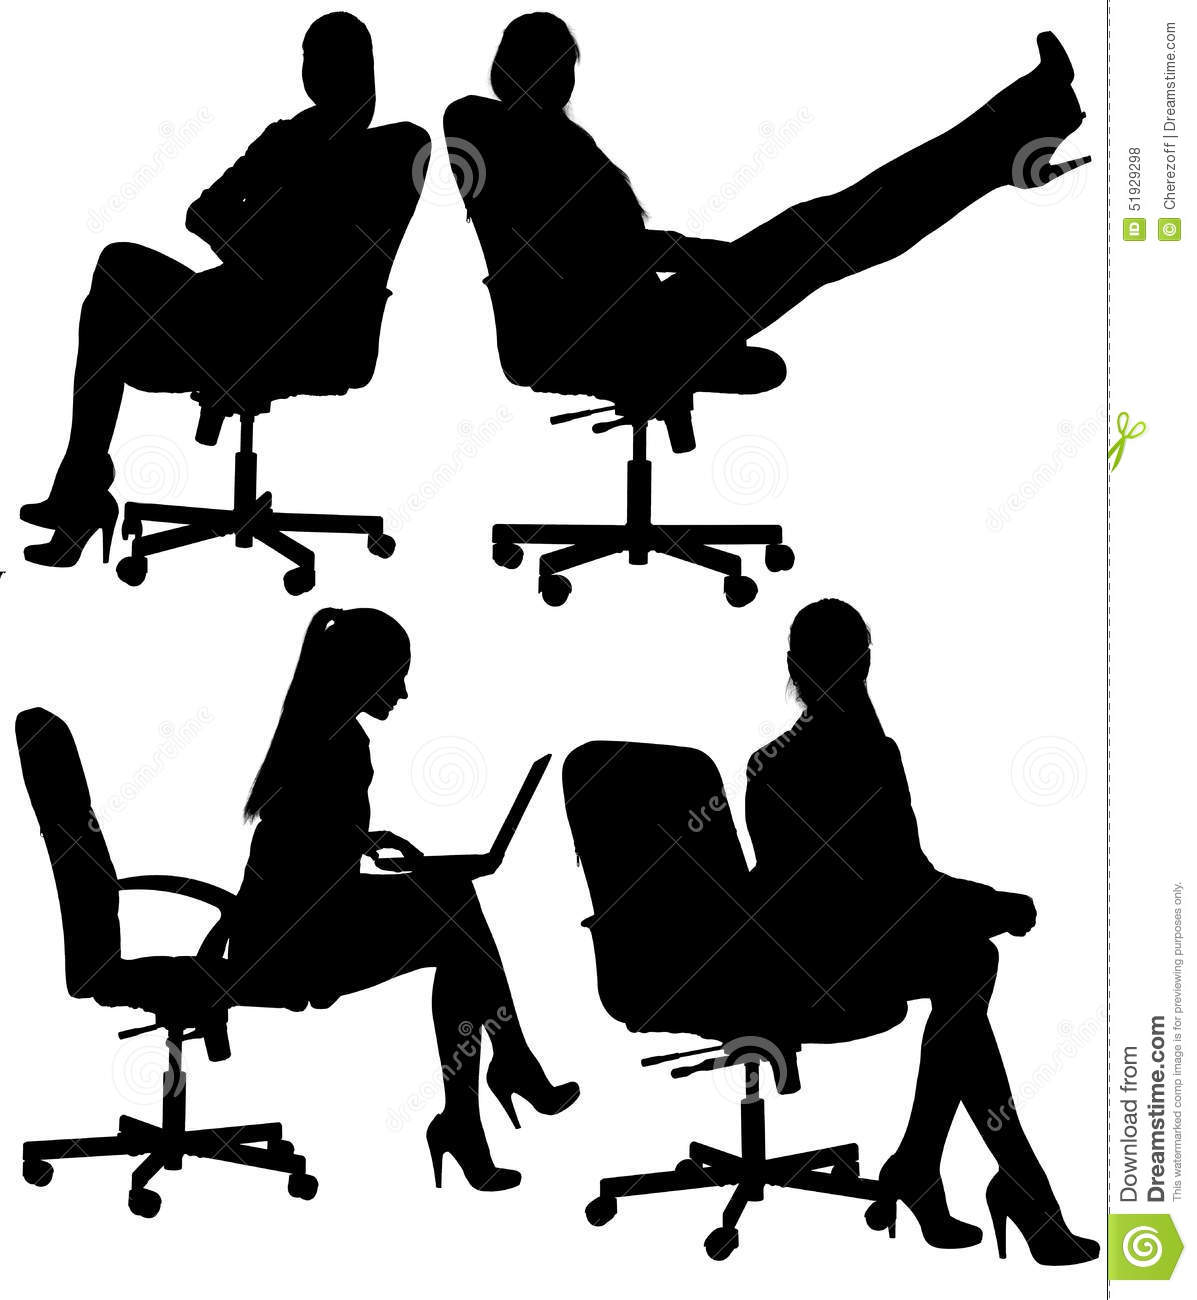 Business woman to sit in an office chair